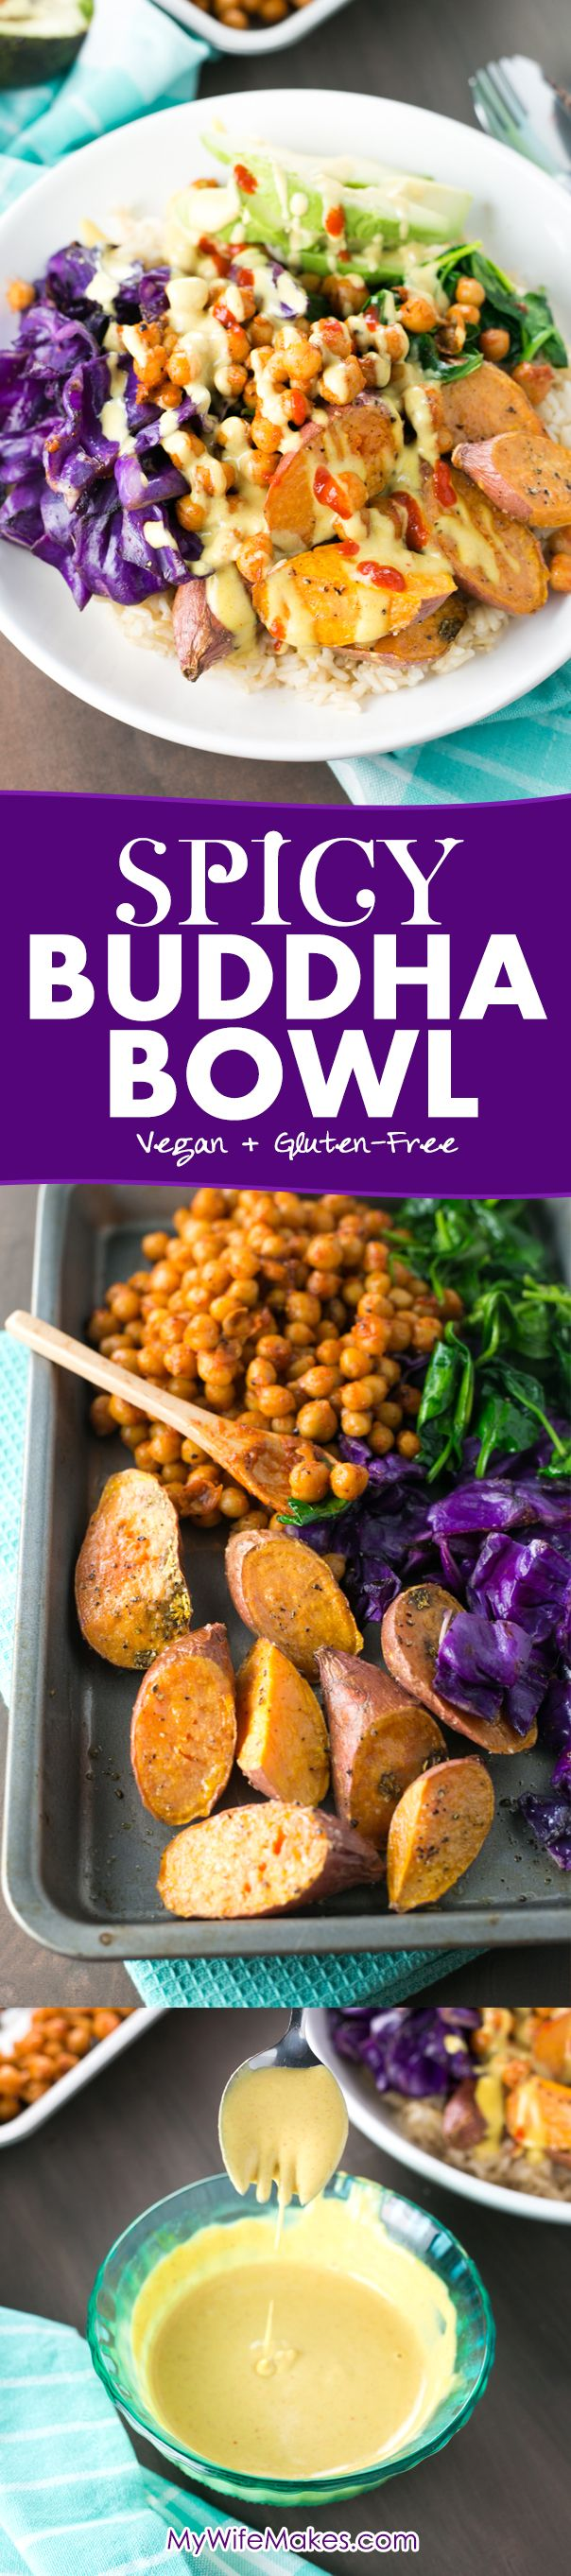 canadian winter boot brands Spicy Buddha Bowl loaded with Brown Rice  Maple Sriracha Chickpeas  Roasted Sweet Potato  Veggies and a creamy Turmeric Tahini Dressing   vegan  glutenfree  buddhabowl  buddha  recipe  recipes  food  veganrecipes  sweetpotato  chickpeas  tahini  healthy